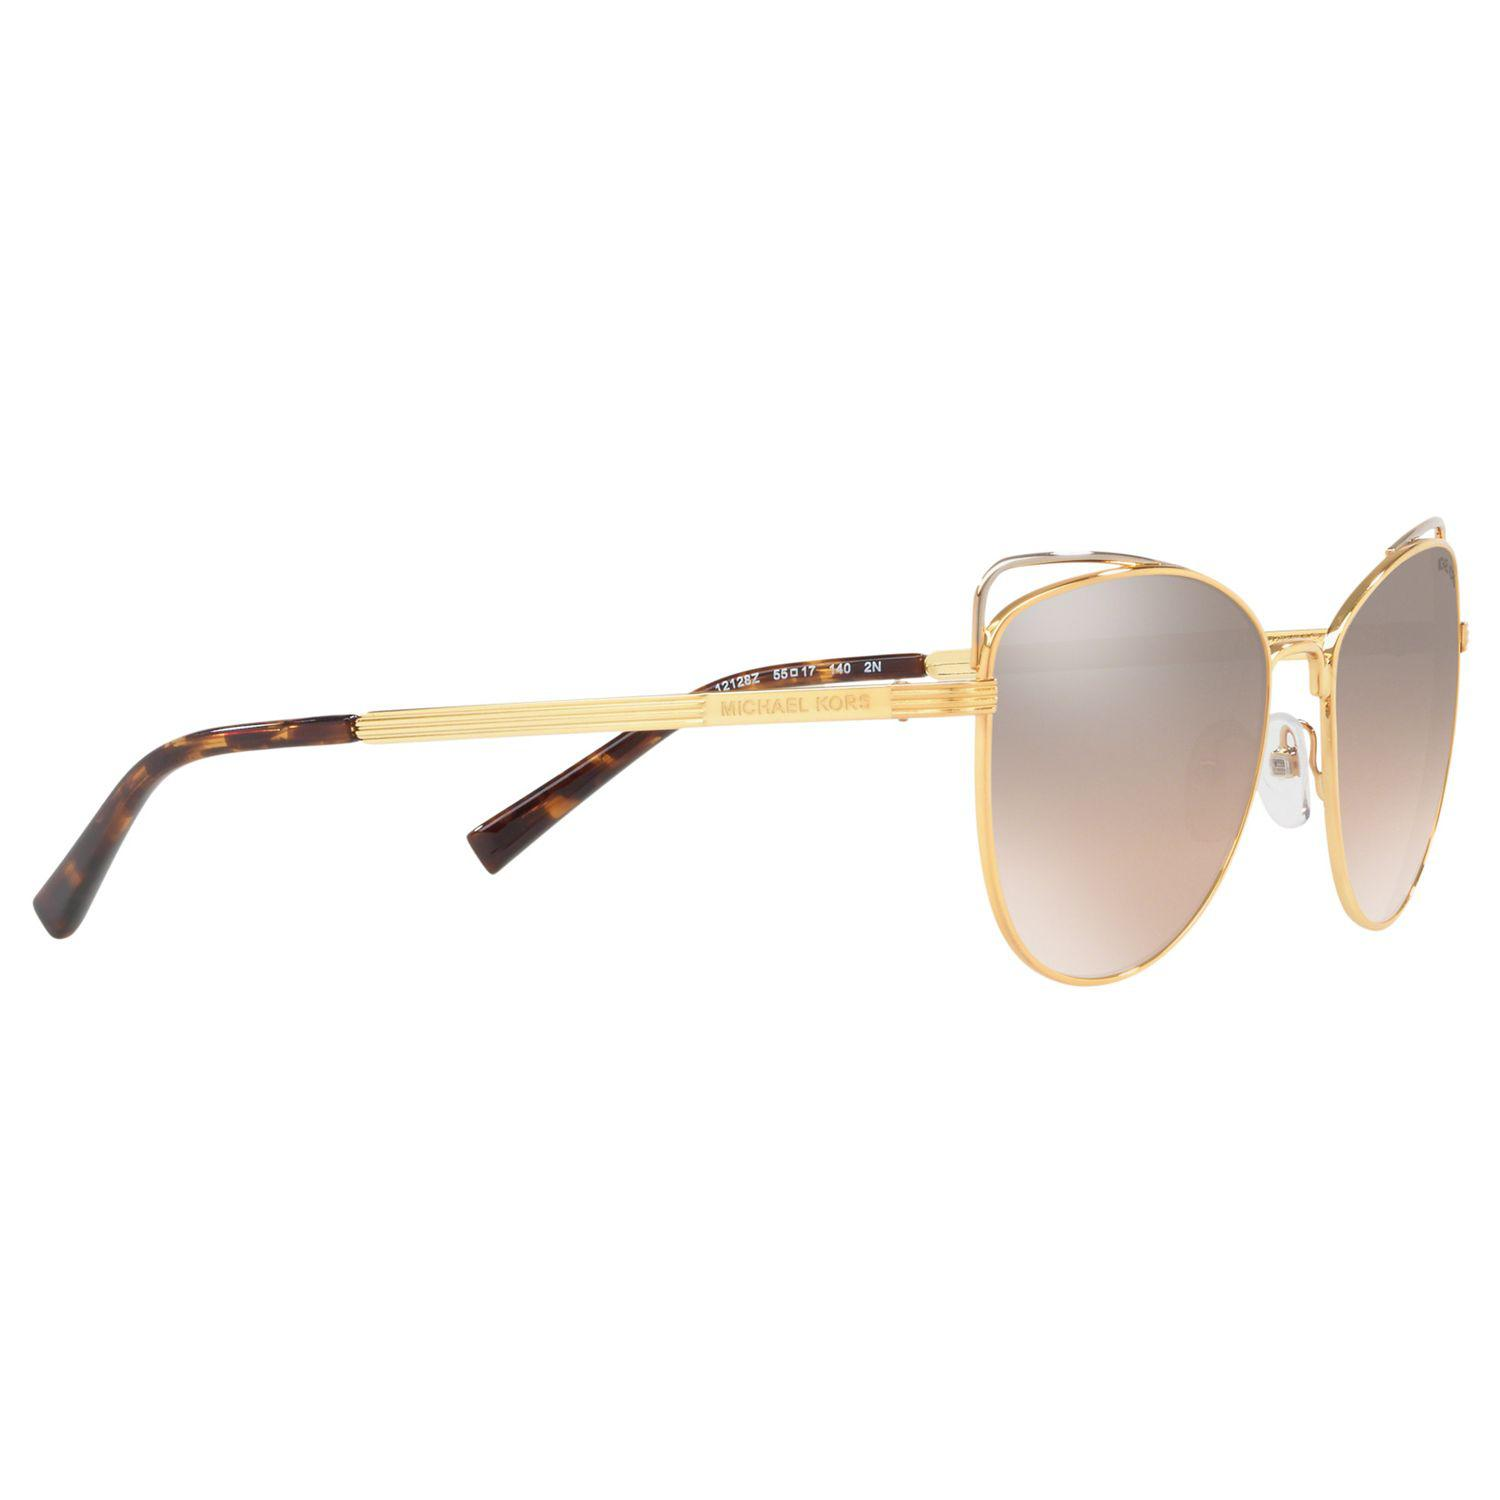 13424f46d11 Michael Kors Mk1035 Women s St. Lucia Cat s Eye Sunglasses in ...